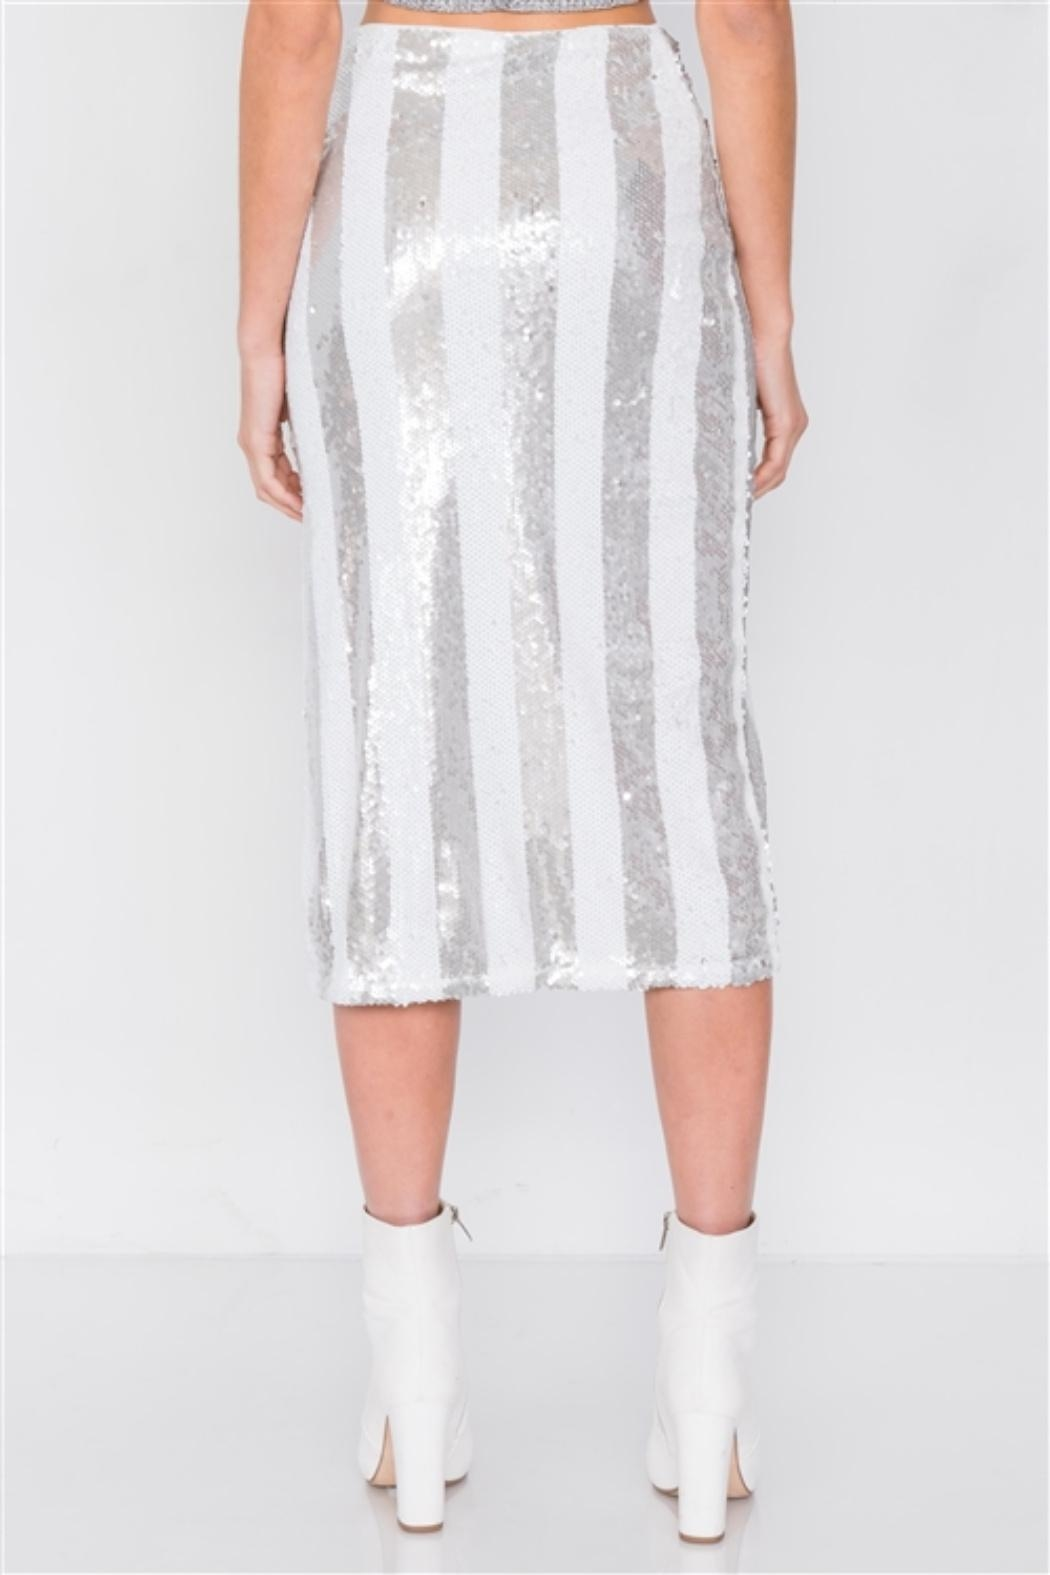 etophe studios Electric Sequin Skirt - Side Cropped Image